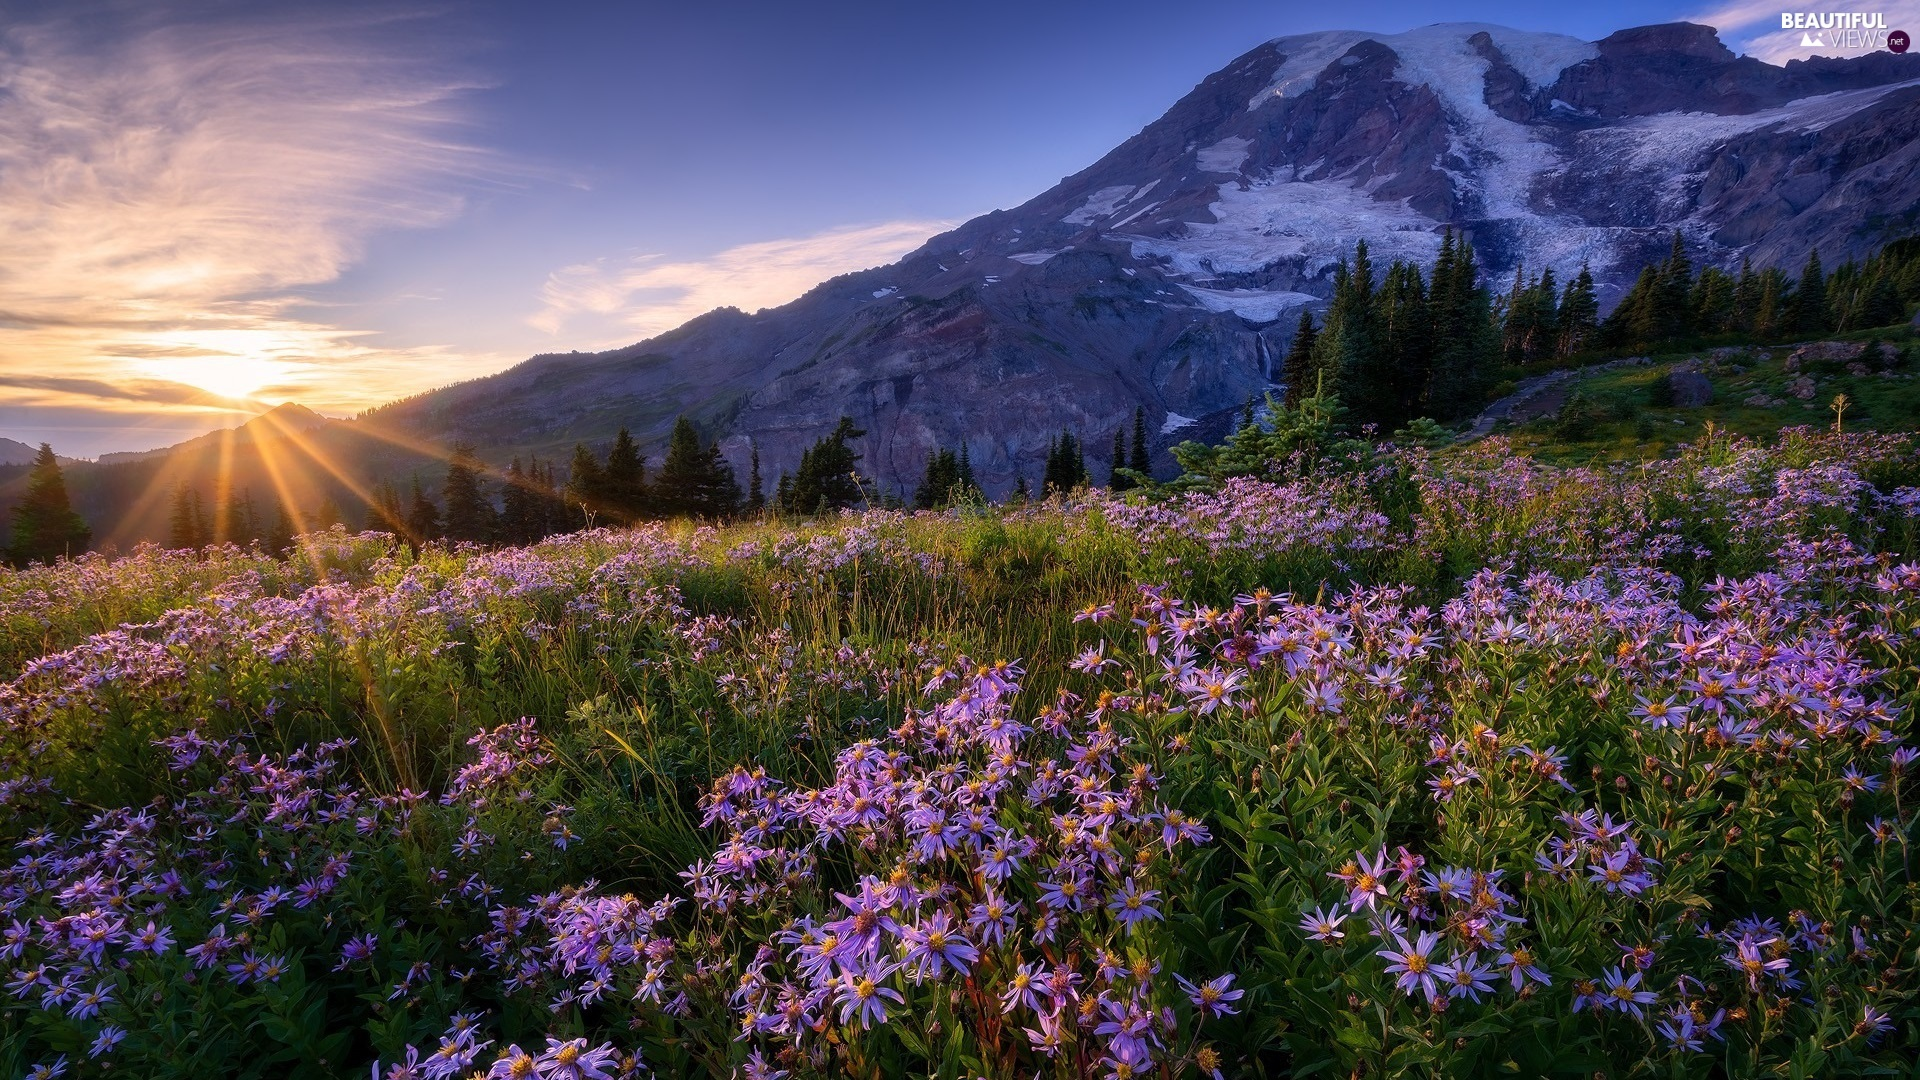 Mount Rainier National Park, The United States, Stratovolcano Mount Rainier, Meadow, viewes, Mountains, rays of the Sun, trees, Flowers